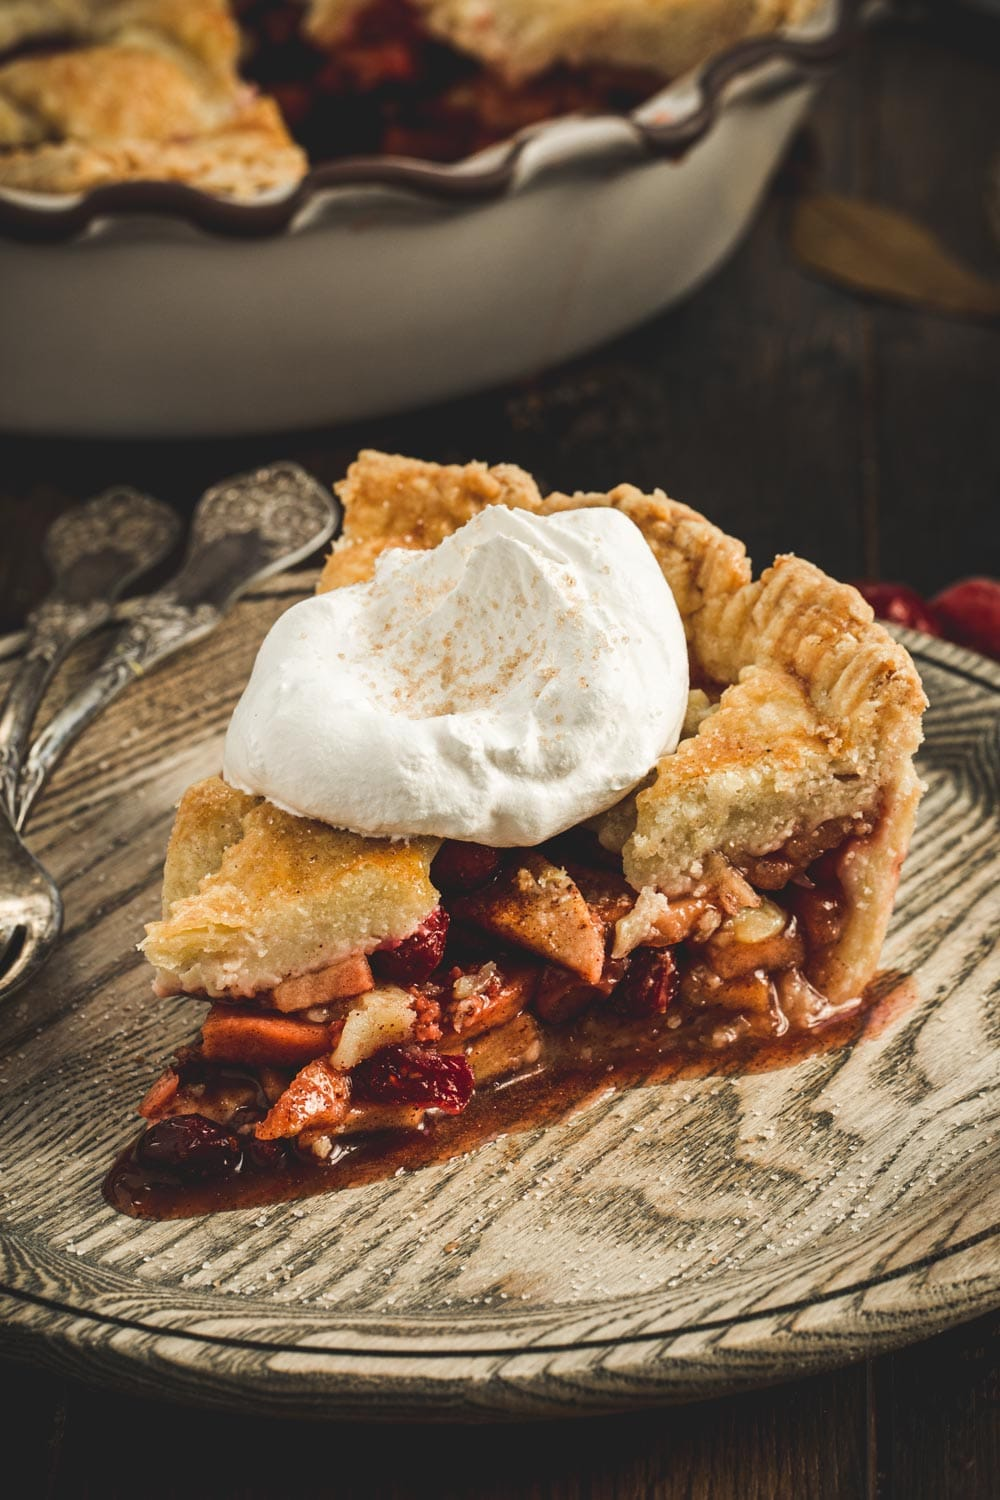 Slice of apple and cranberry pie topped with whipped cream and sitting on a wooden plate.